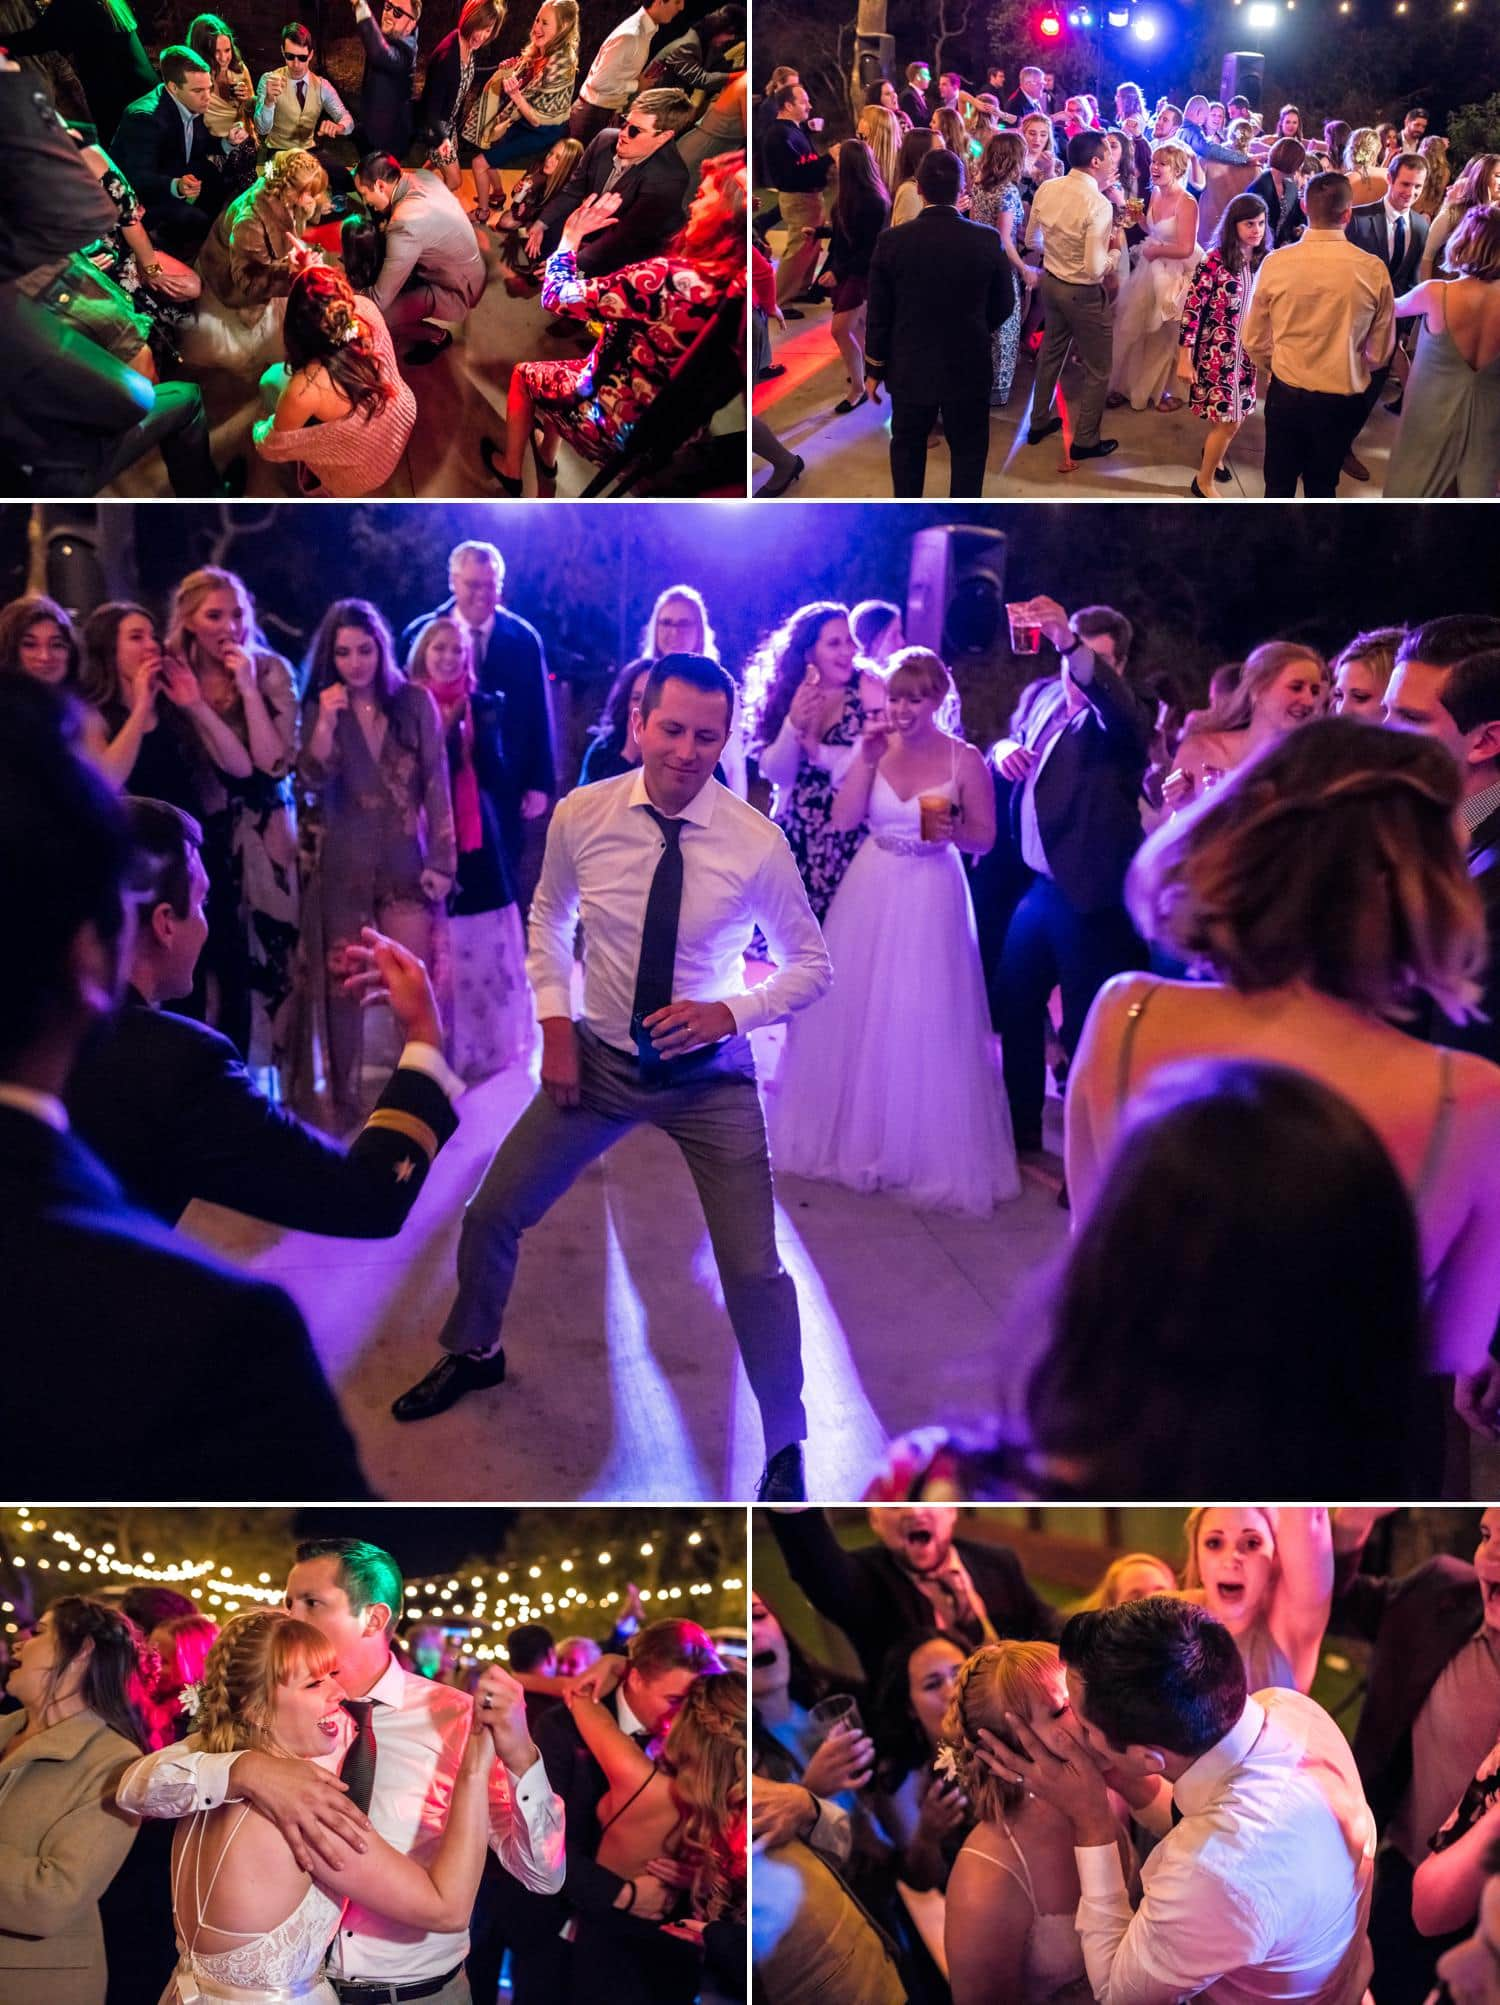 Colorful lights and dancing at wedding reception.